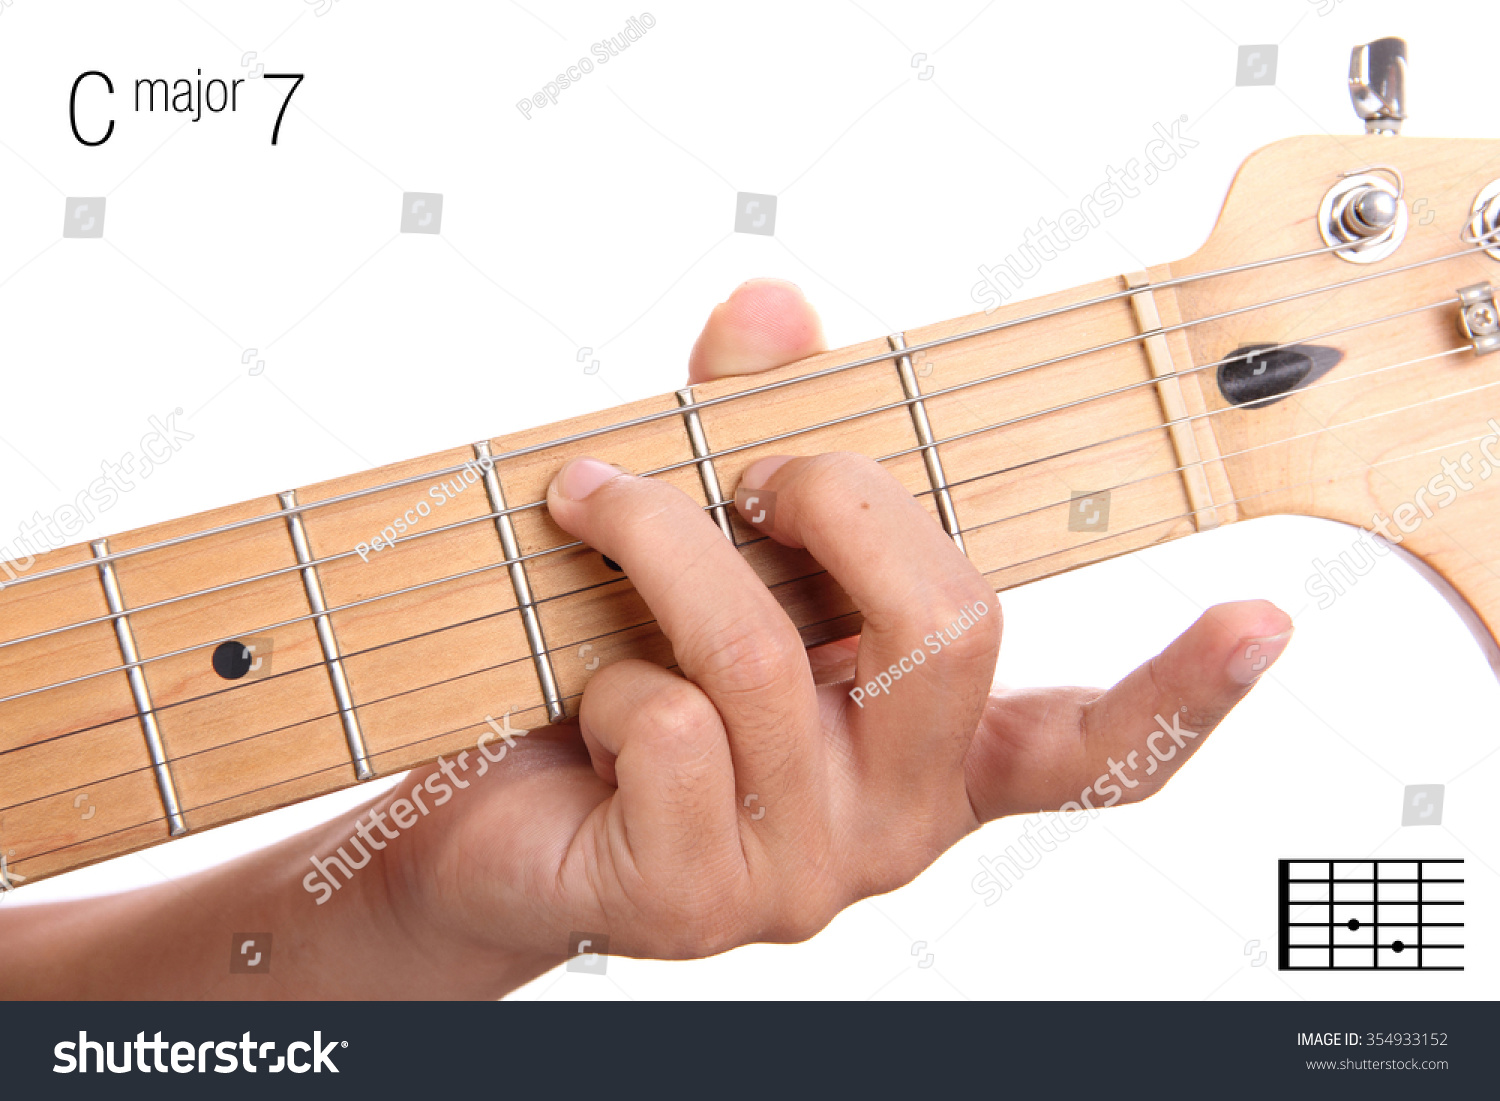 C Maj 7 Major Seventh Keys Guitar Tutorial Stock Photo Edit Now